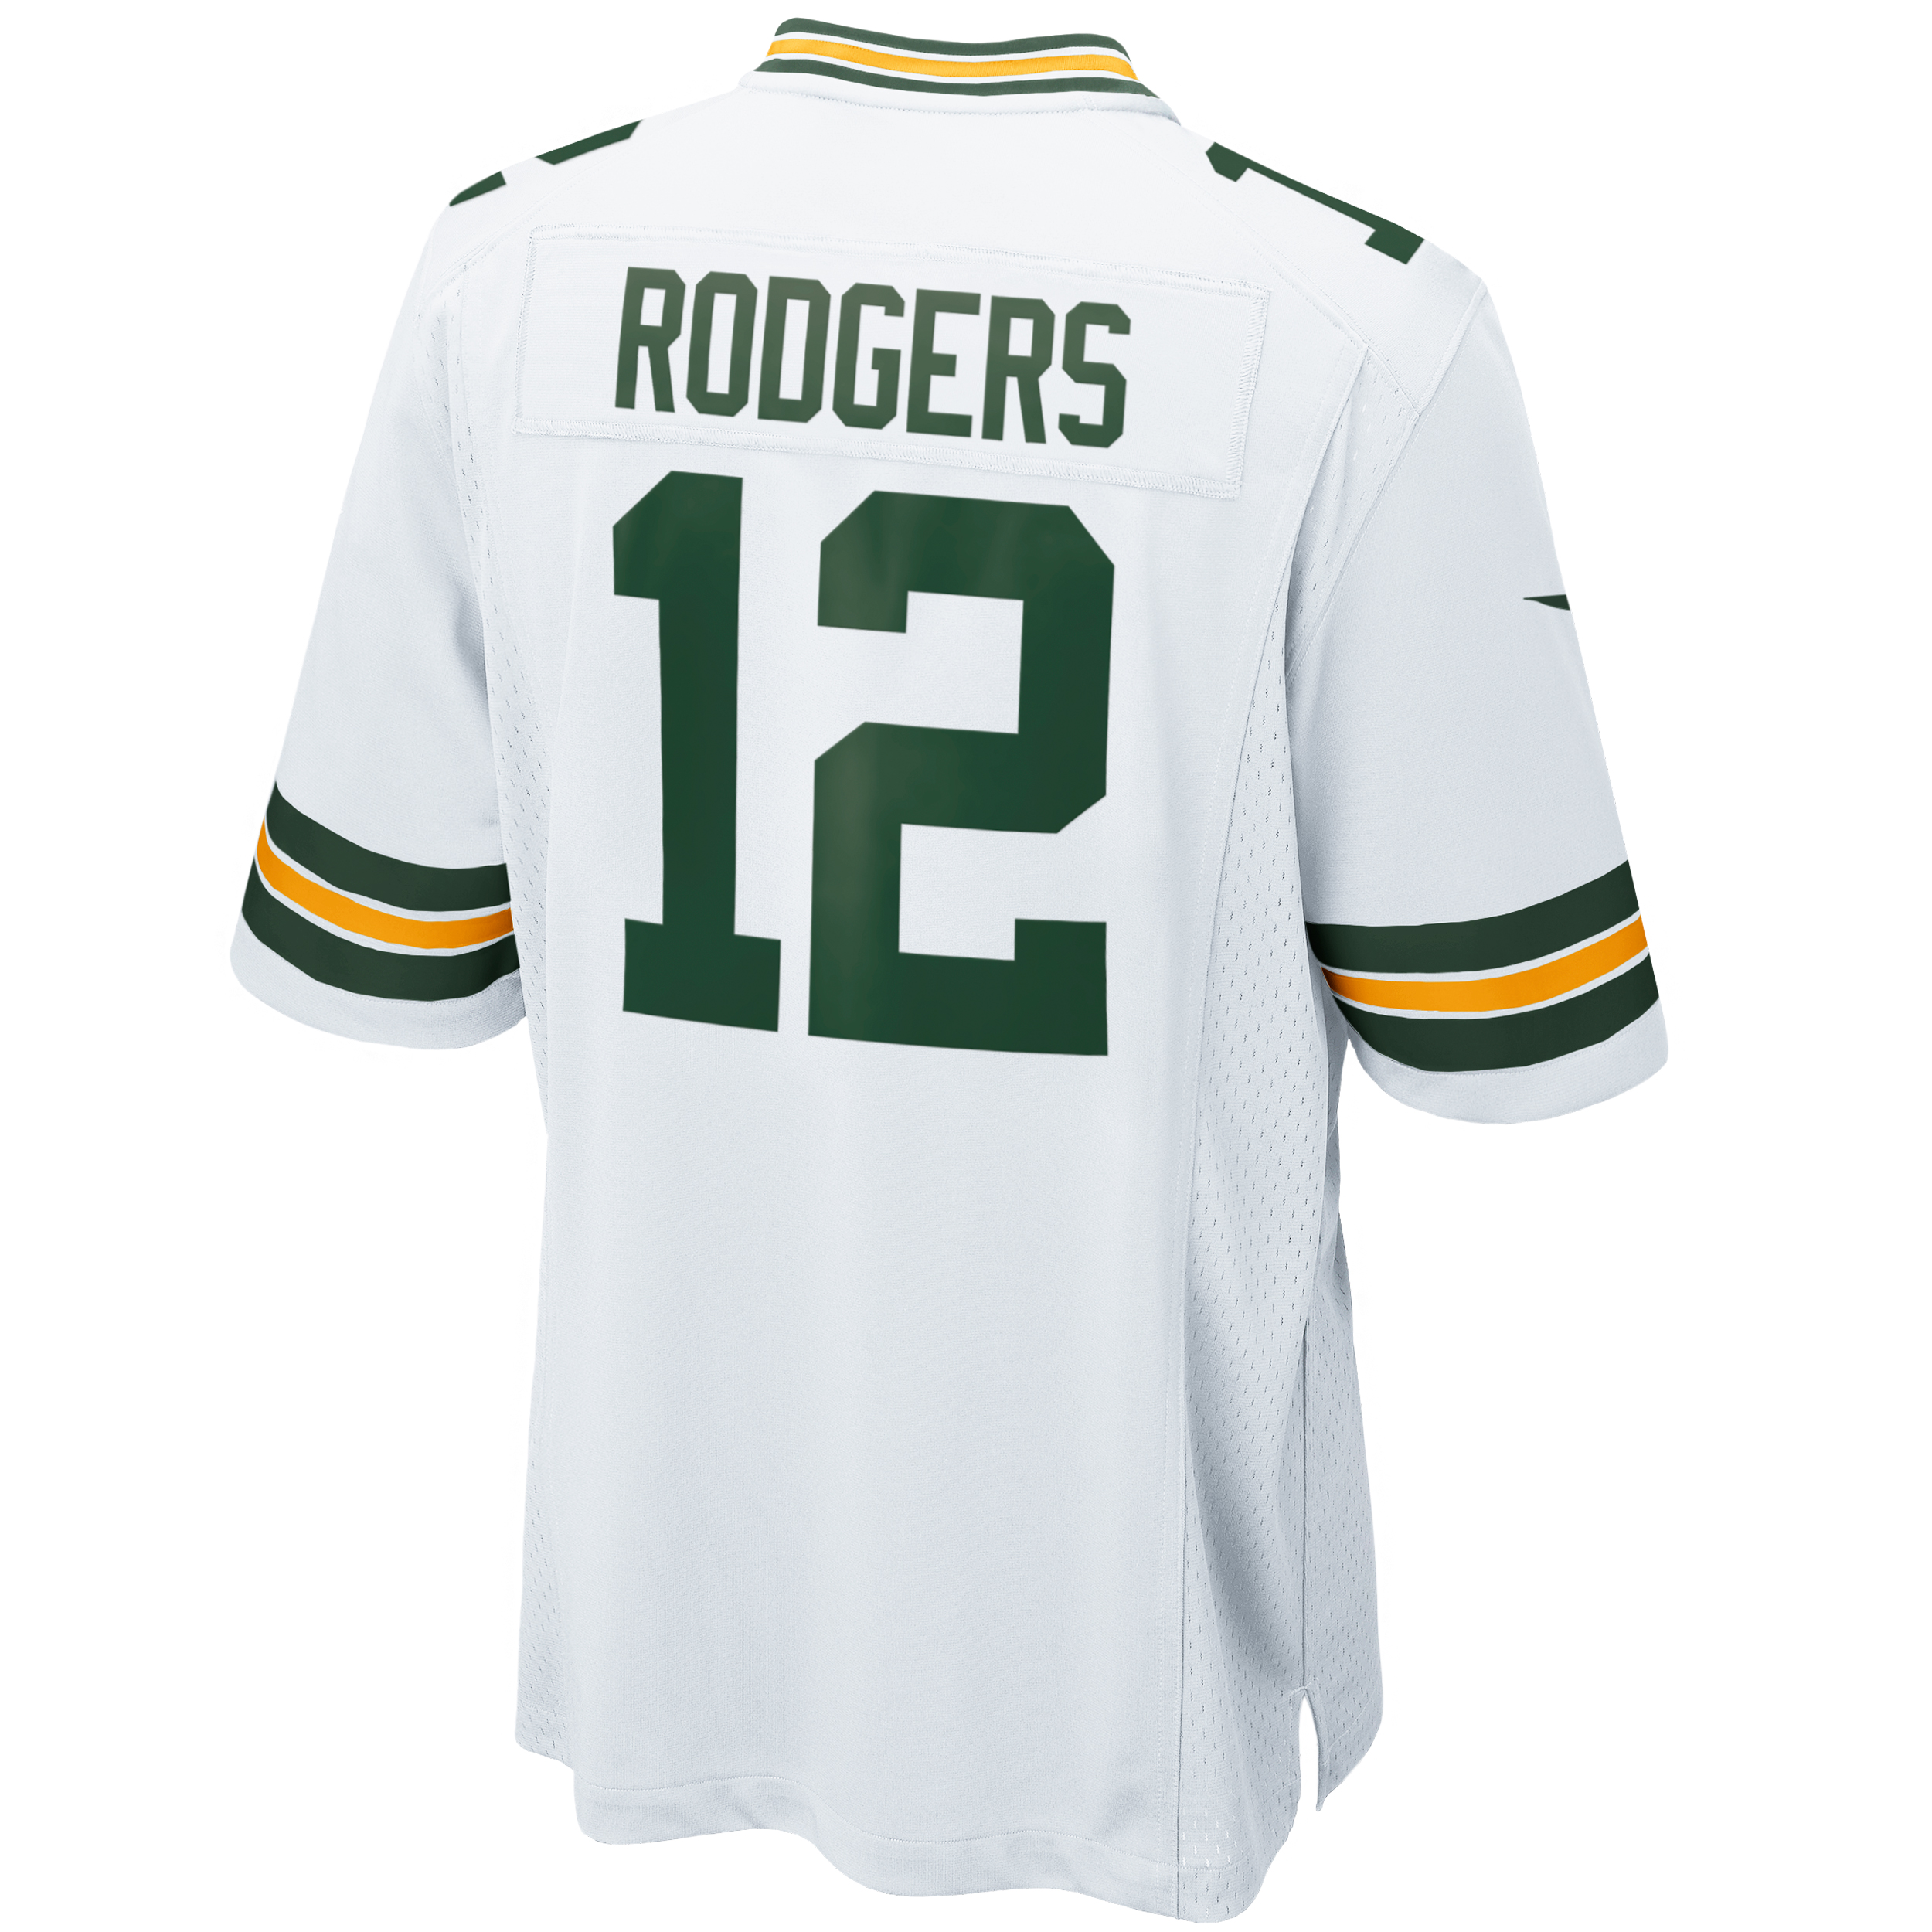 #12 Aaron Rodgers Youth Away Game Jersey